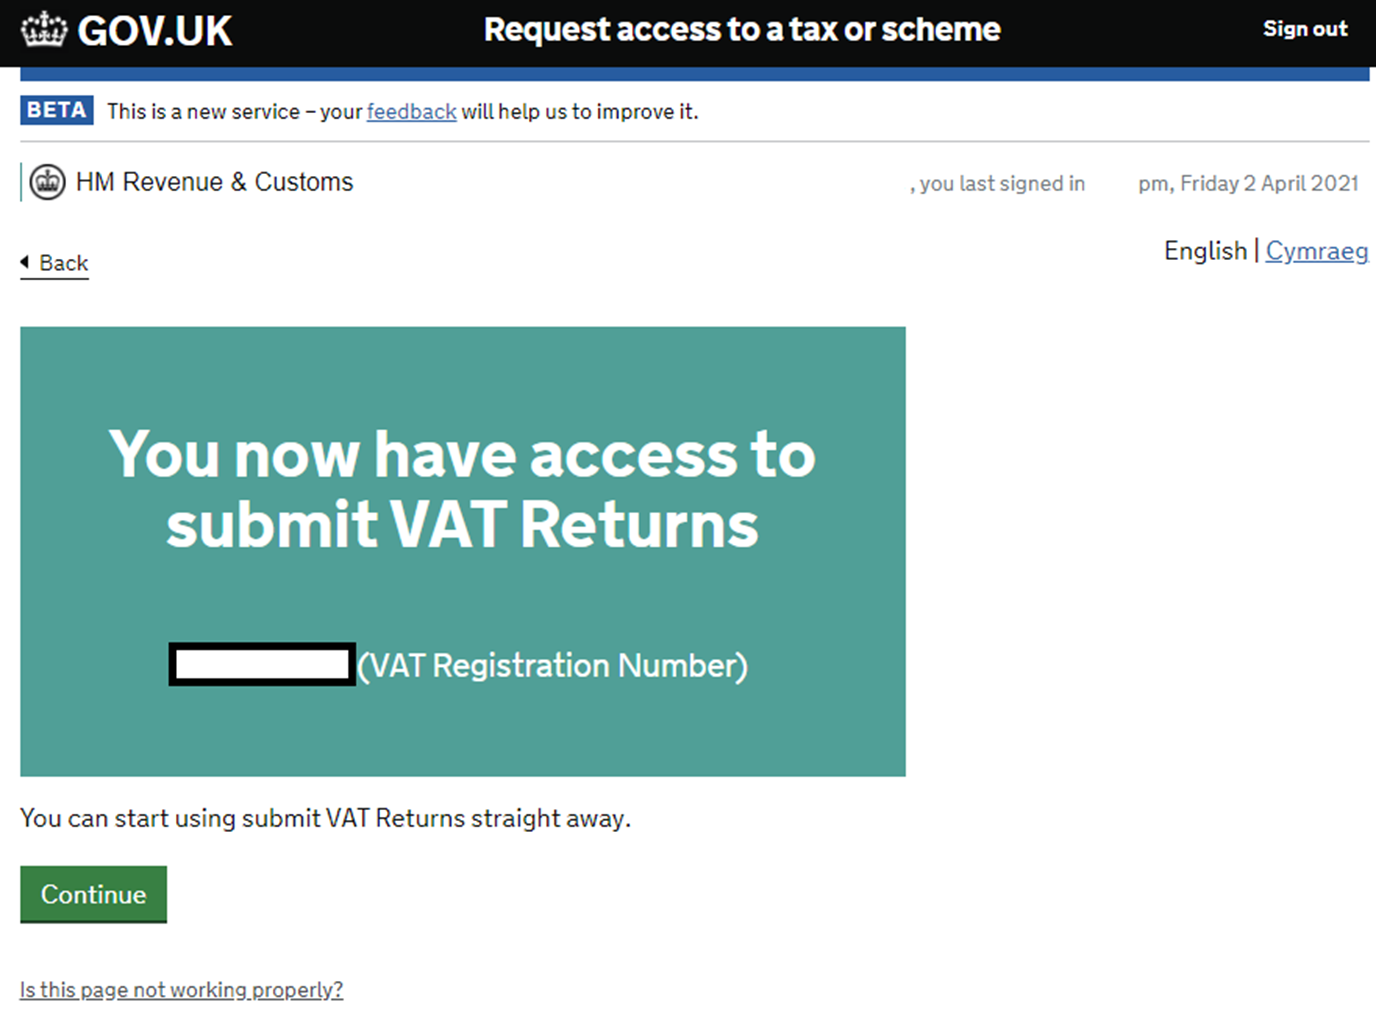 HMRC-VAT-enrolment-successful-11